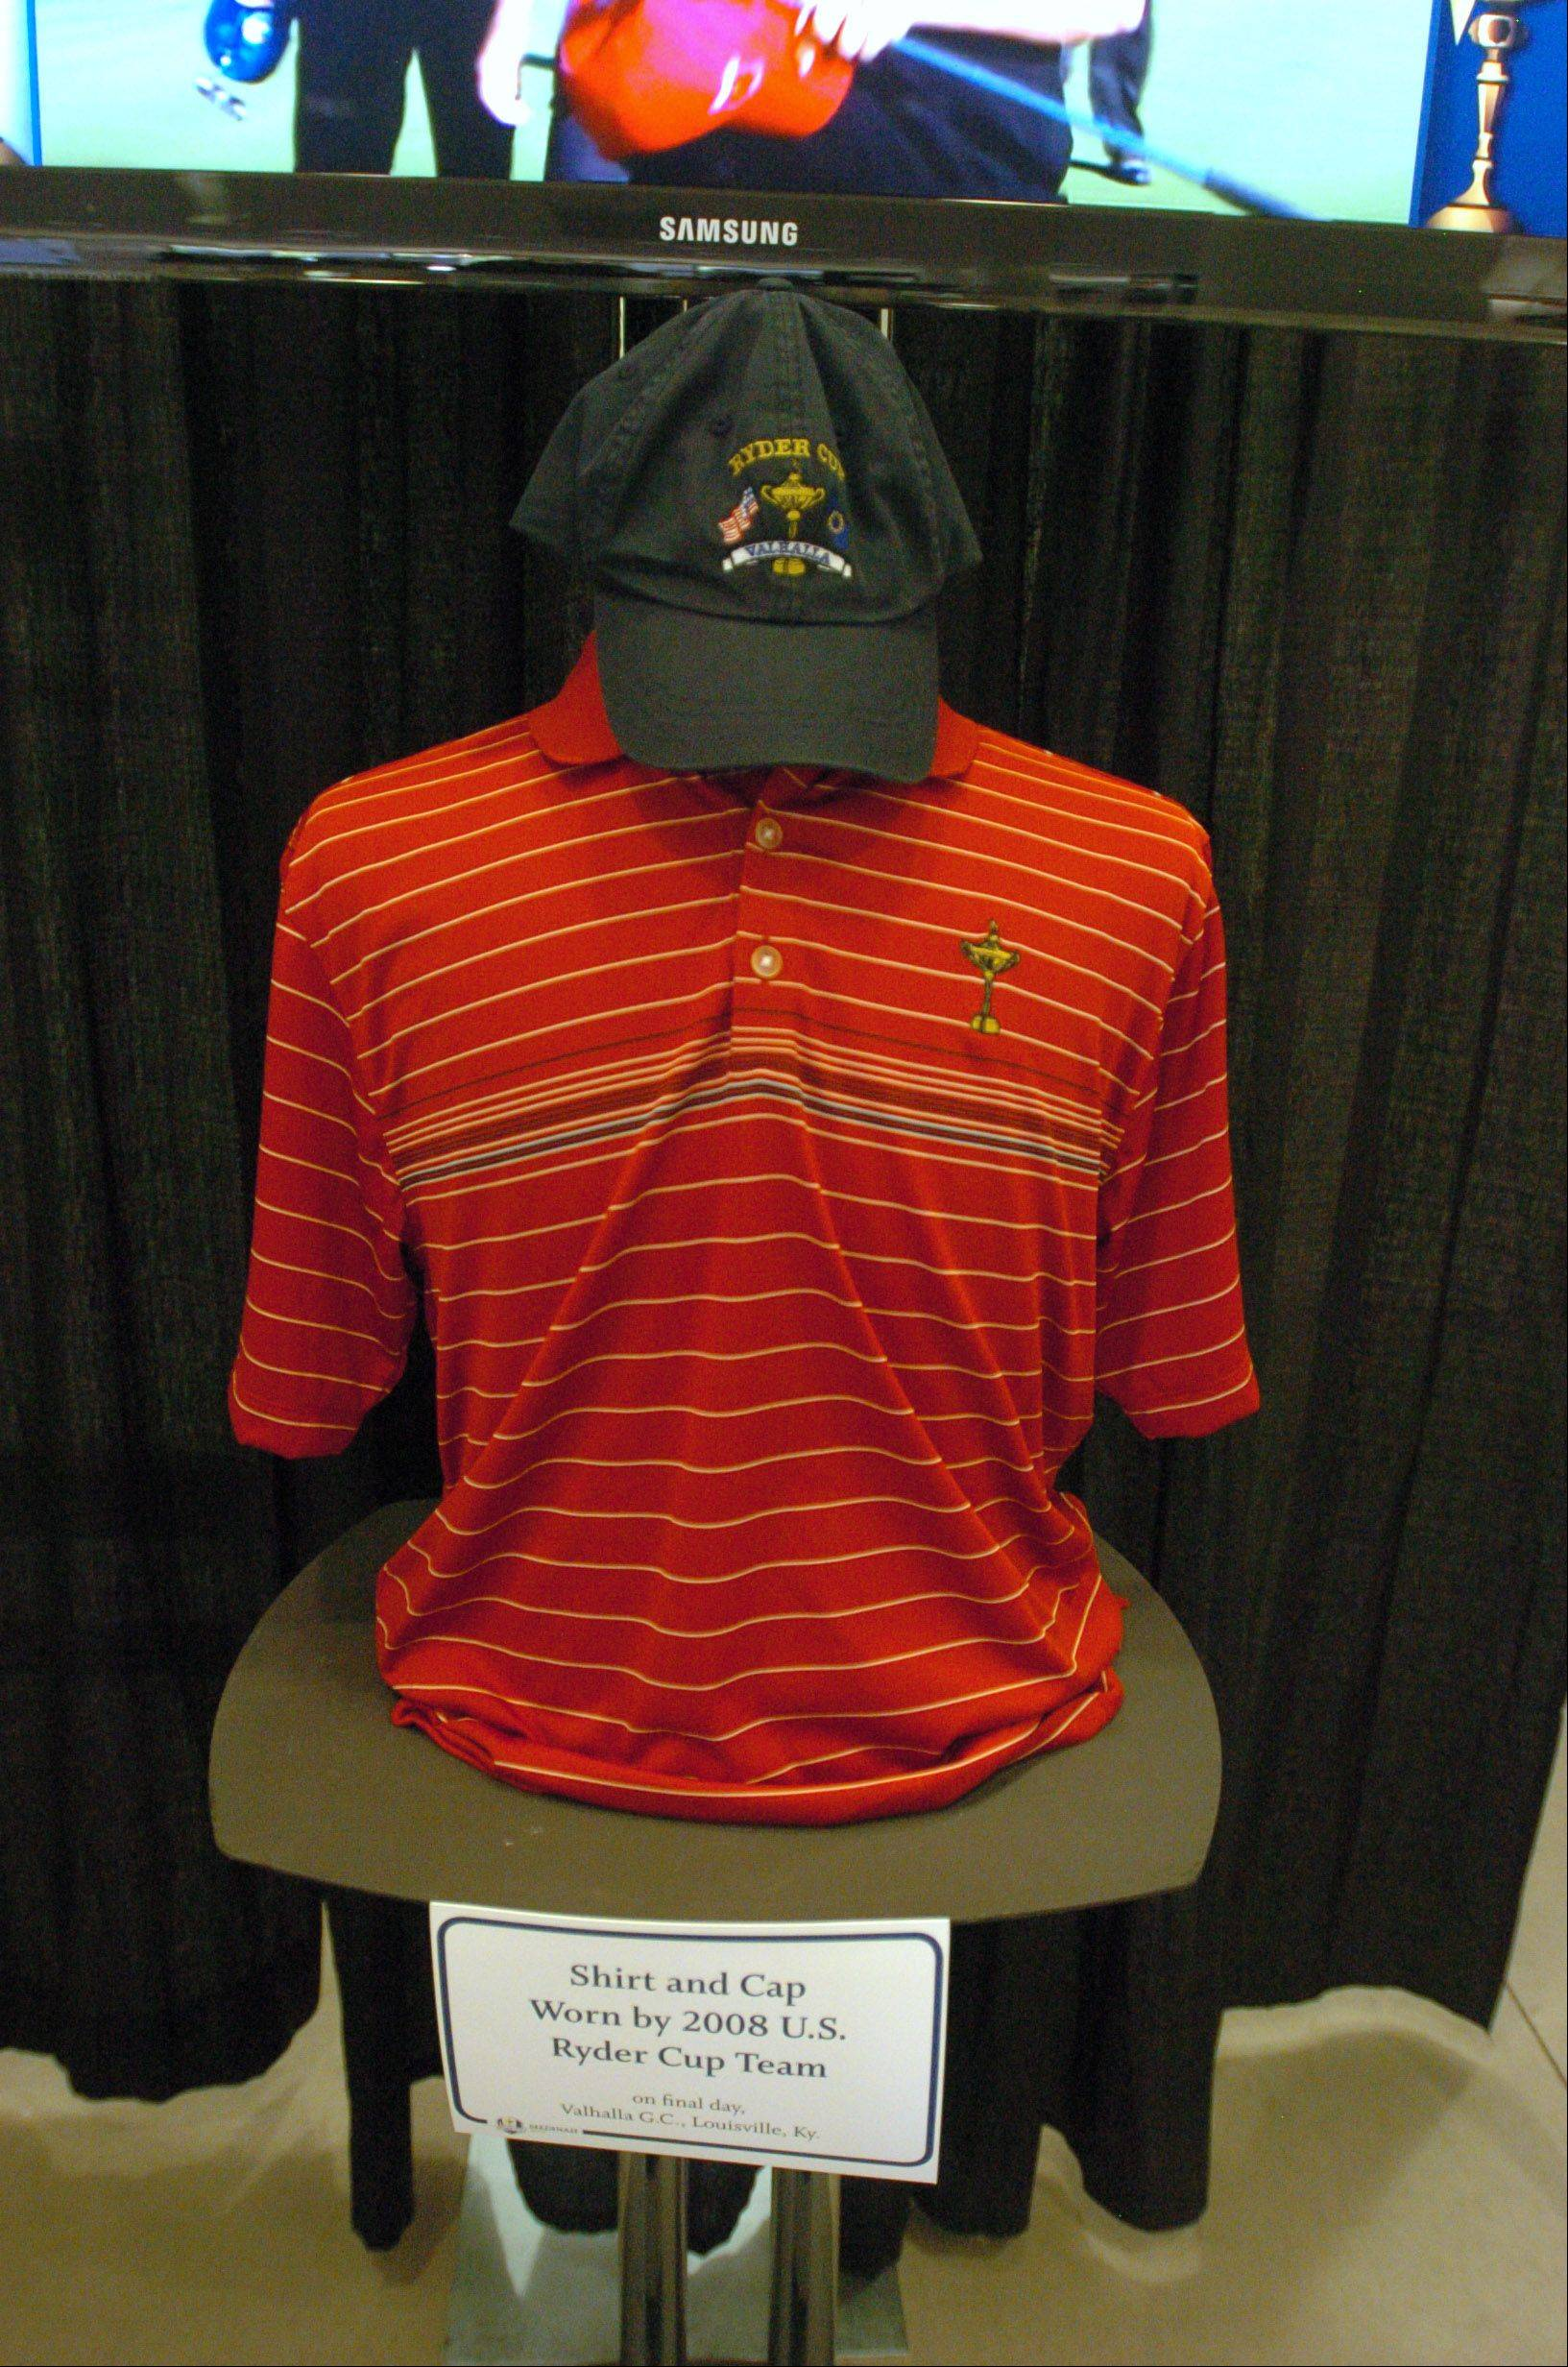 The shirt and cap worn by the 2008 U.S. Ryder Cup team was one of the many items on display.